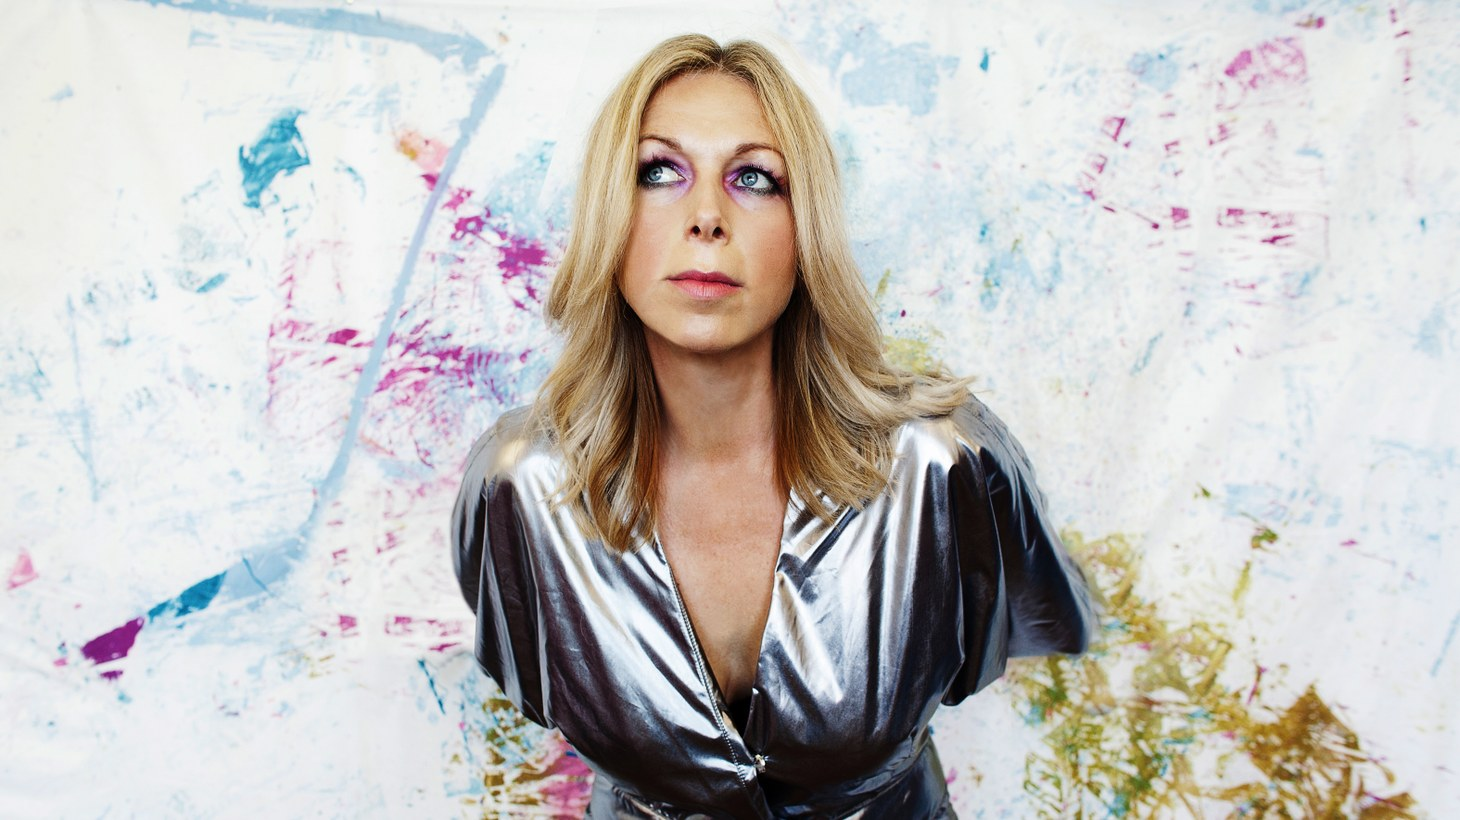 """Jane Weaver catches cosmic sounds, bygone Lebanese torch songs, 1980's Russian aerobics records and Australian punk for her new album and turns them into superlative pop like we hear on the song """"The Revolution of Super Visions."""""""